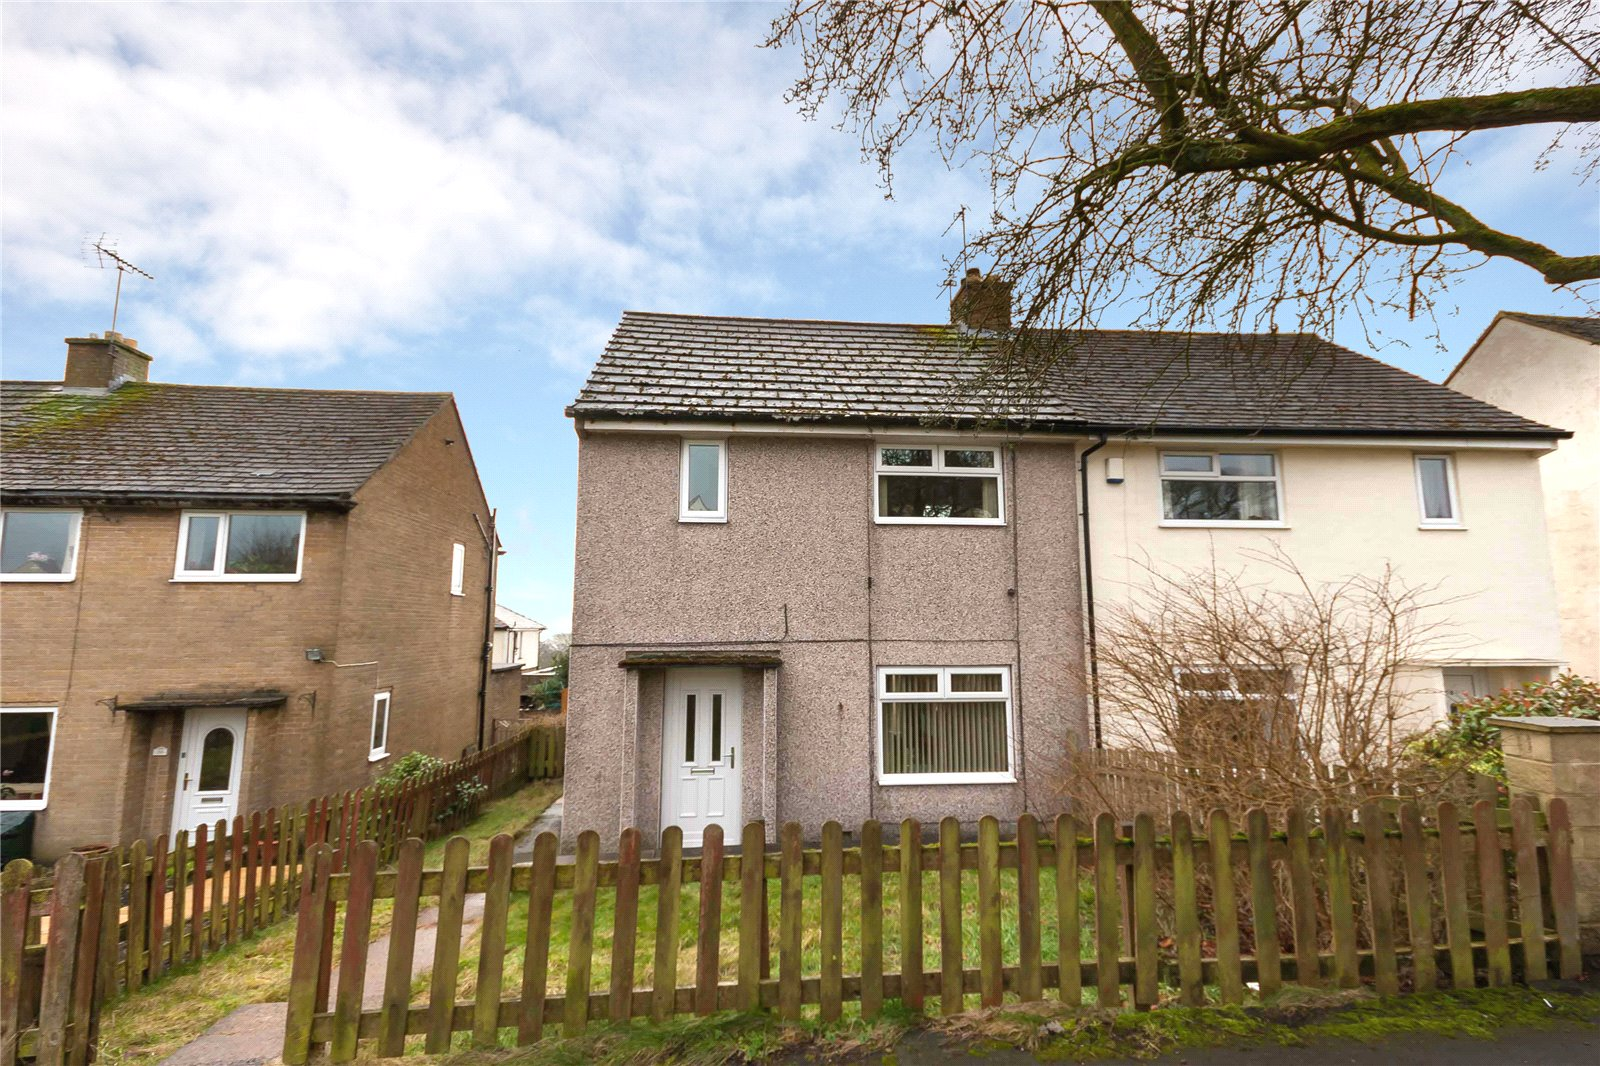 2 Bedrooms Semi Detached House for sale in Whitehill Crescent, Illingworth, HALIFAX, West Yorkshire, HX2